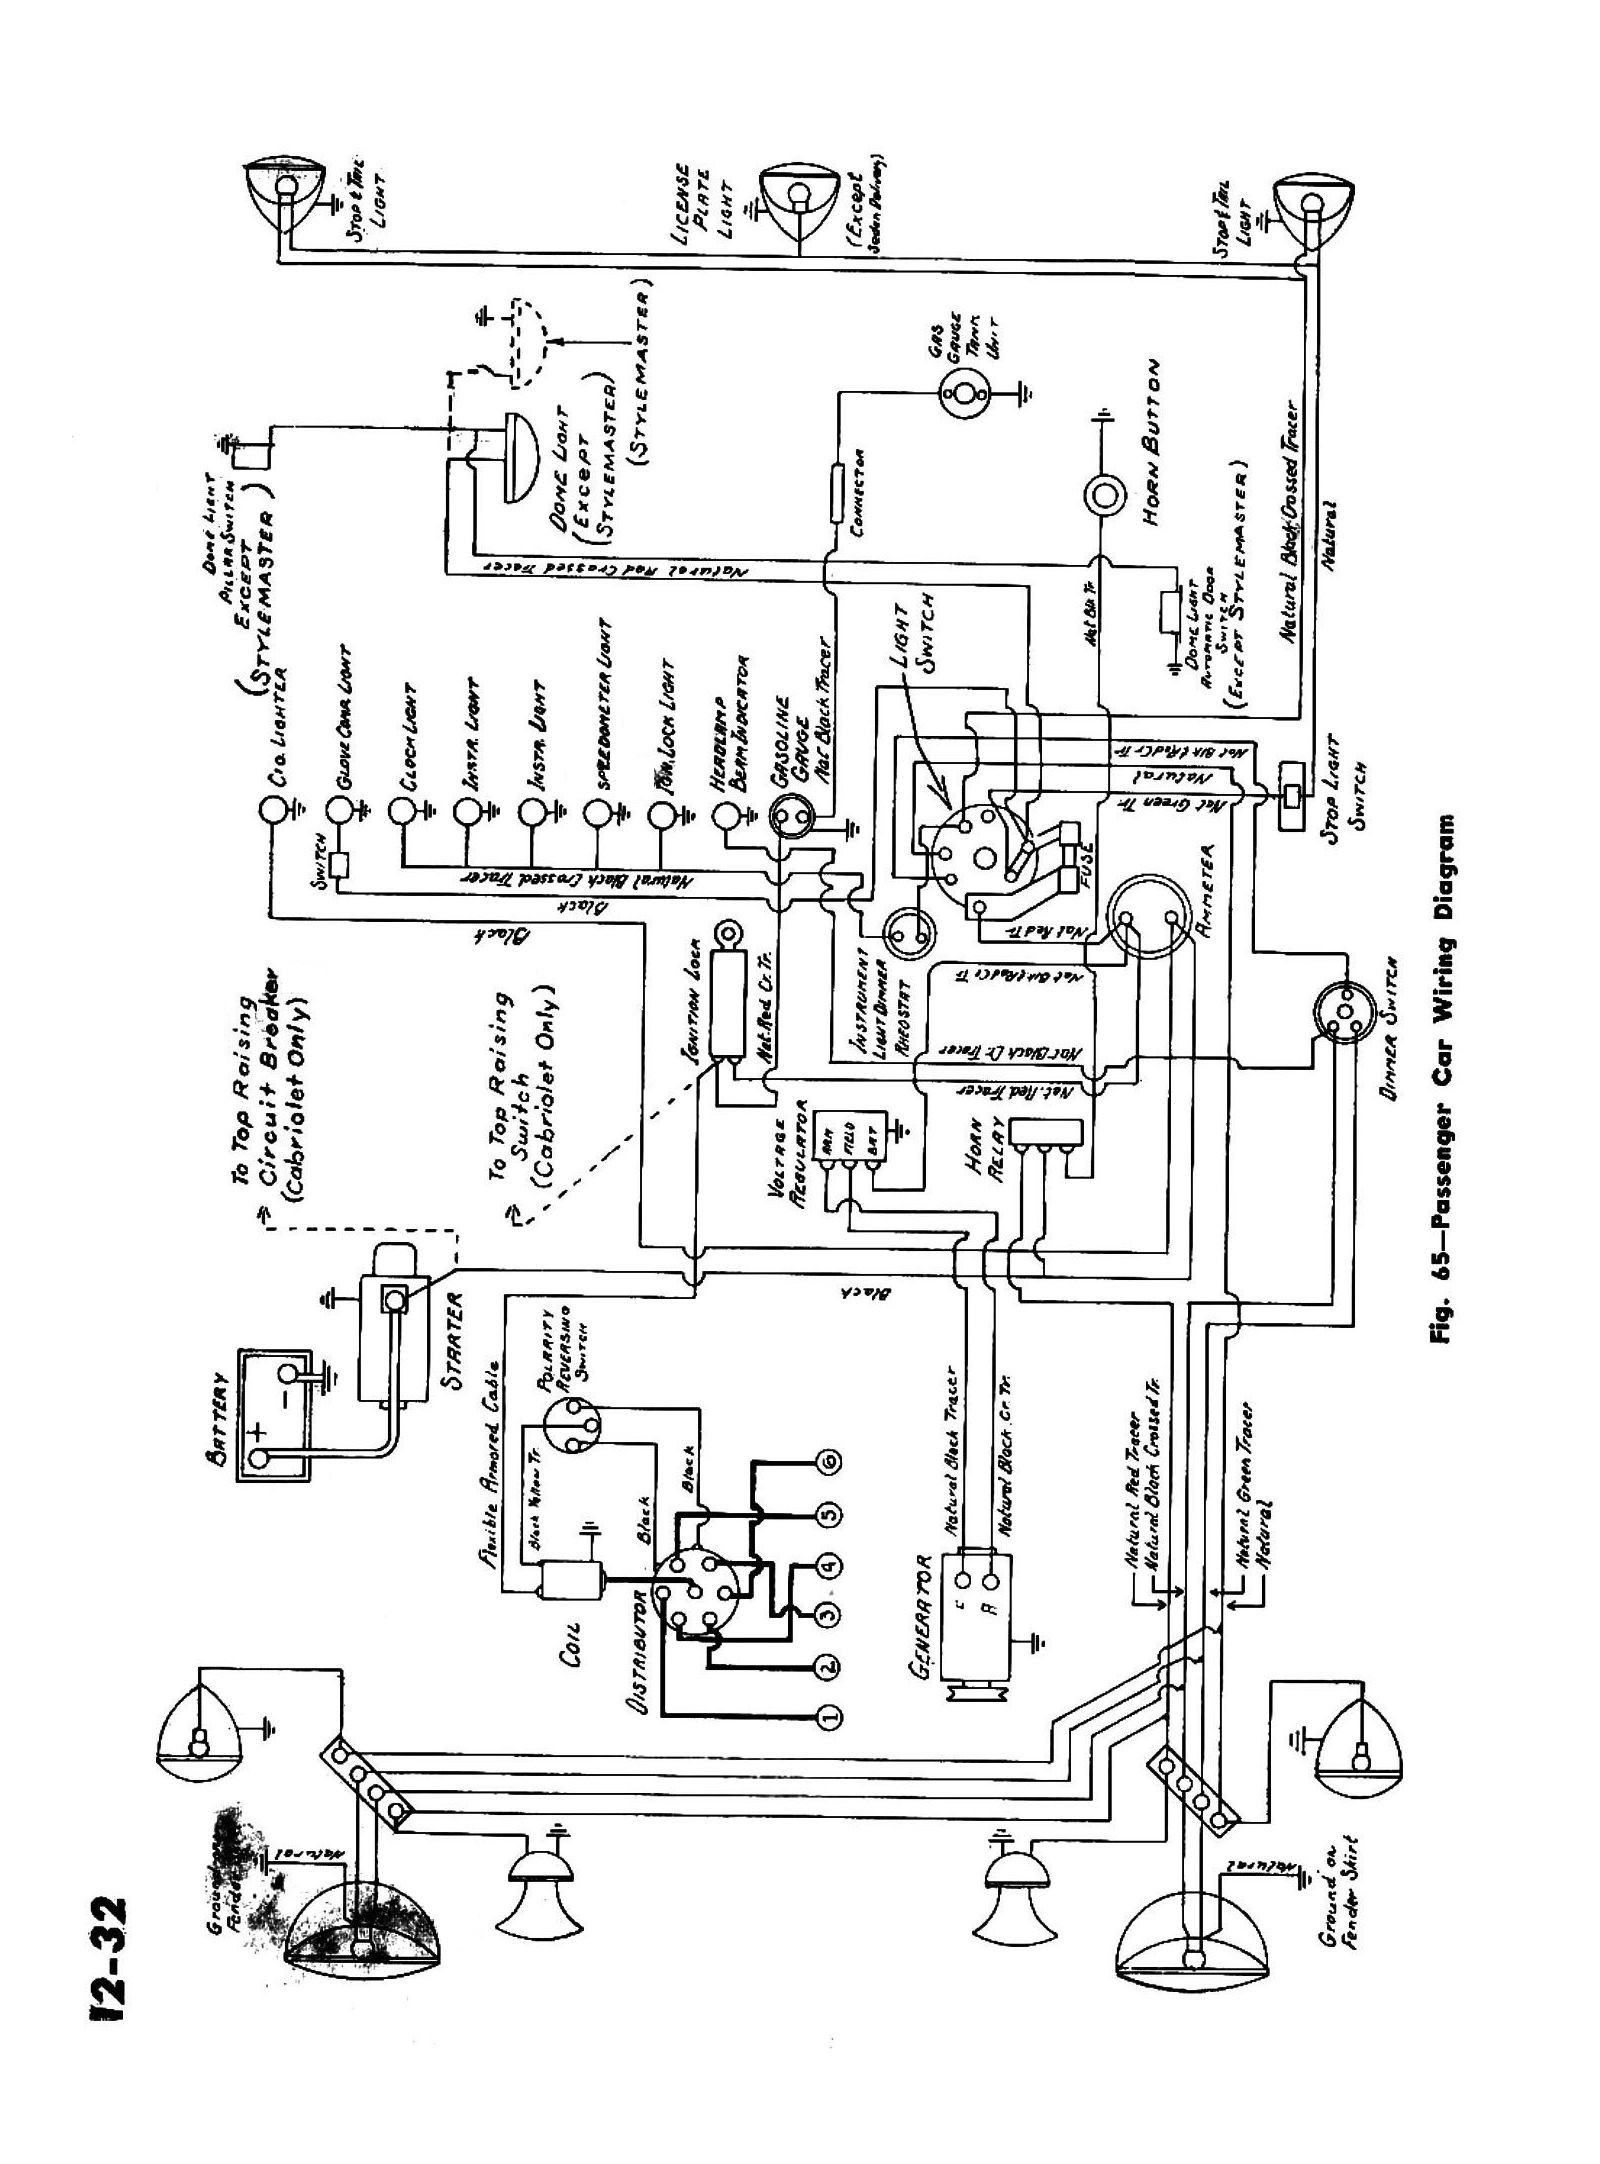 Ford truck wiring diagram 1946 get free image about wiring diagram - 1946 Willys Jeep Wiring Diagram Wiring Diagrams Willys Jeep Wiring 1942 Willys Jeep Wiring Diagram Ford